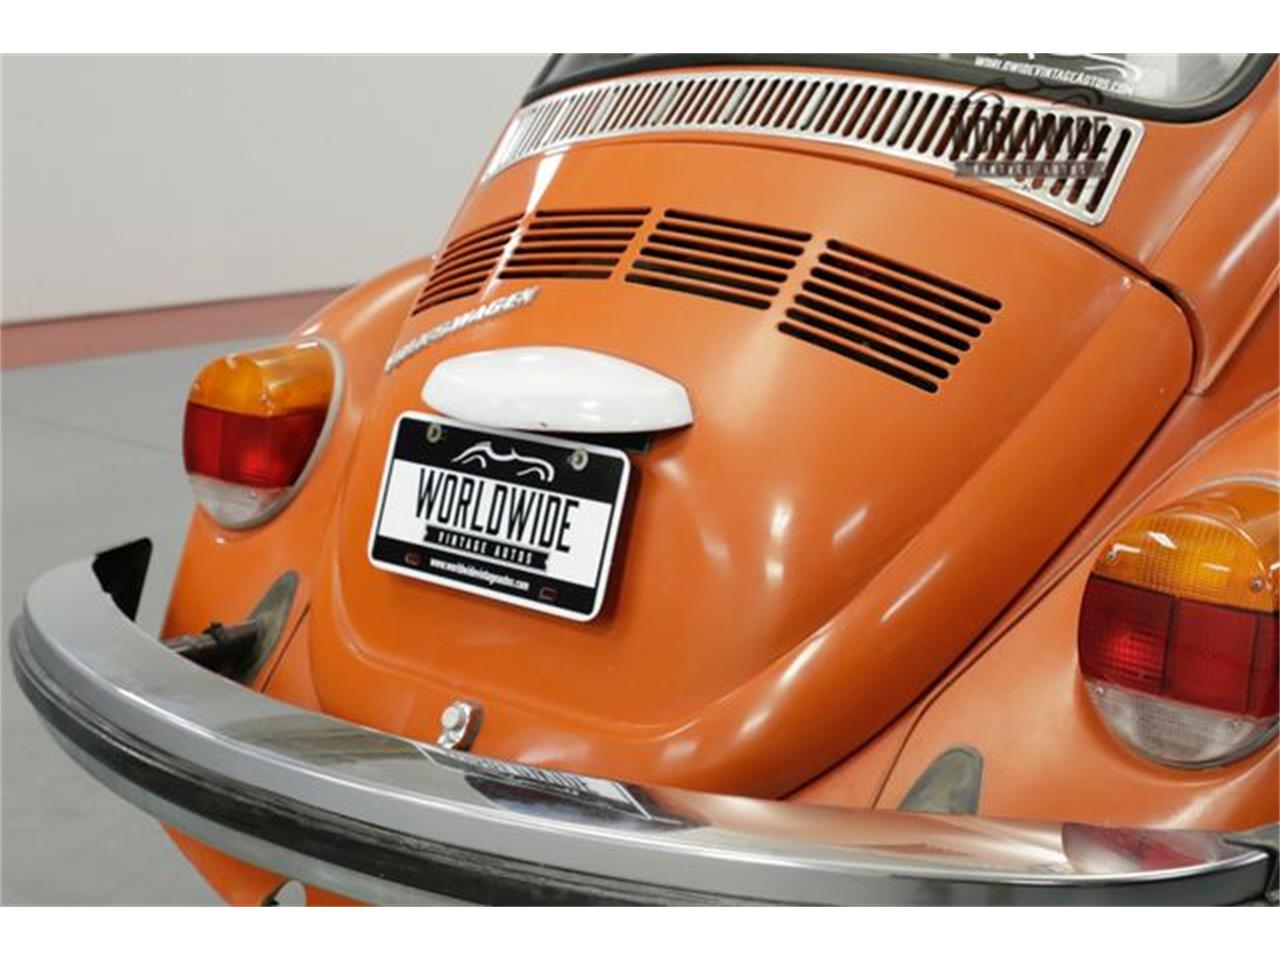 Large Picture of 1974 Volkswagen Beetle located in Denver  Colorado - $6,900.00 - P1F5